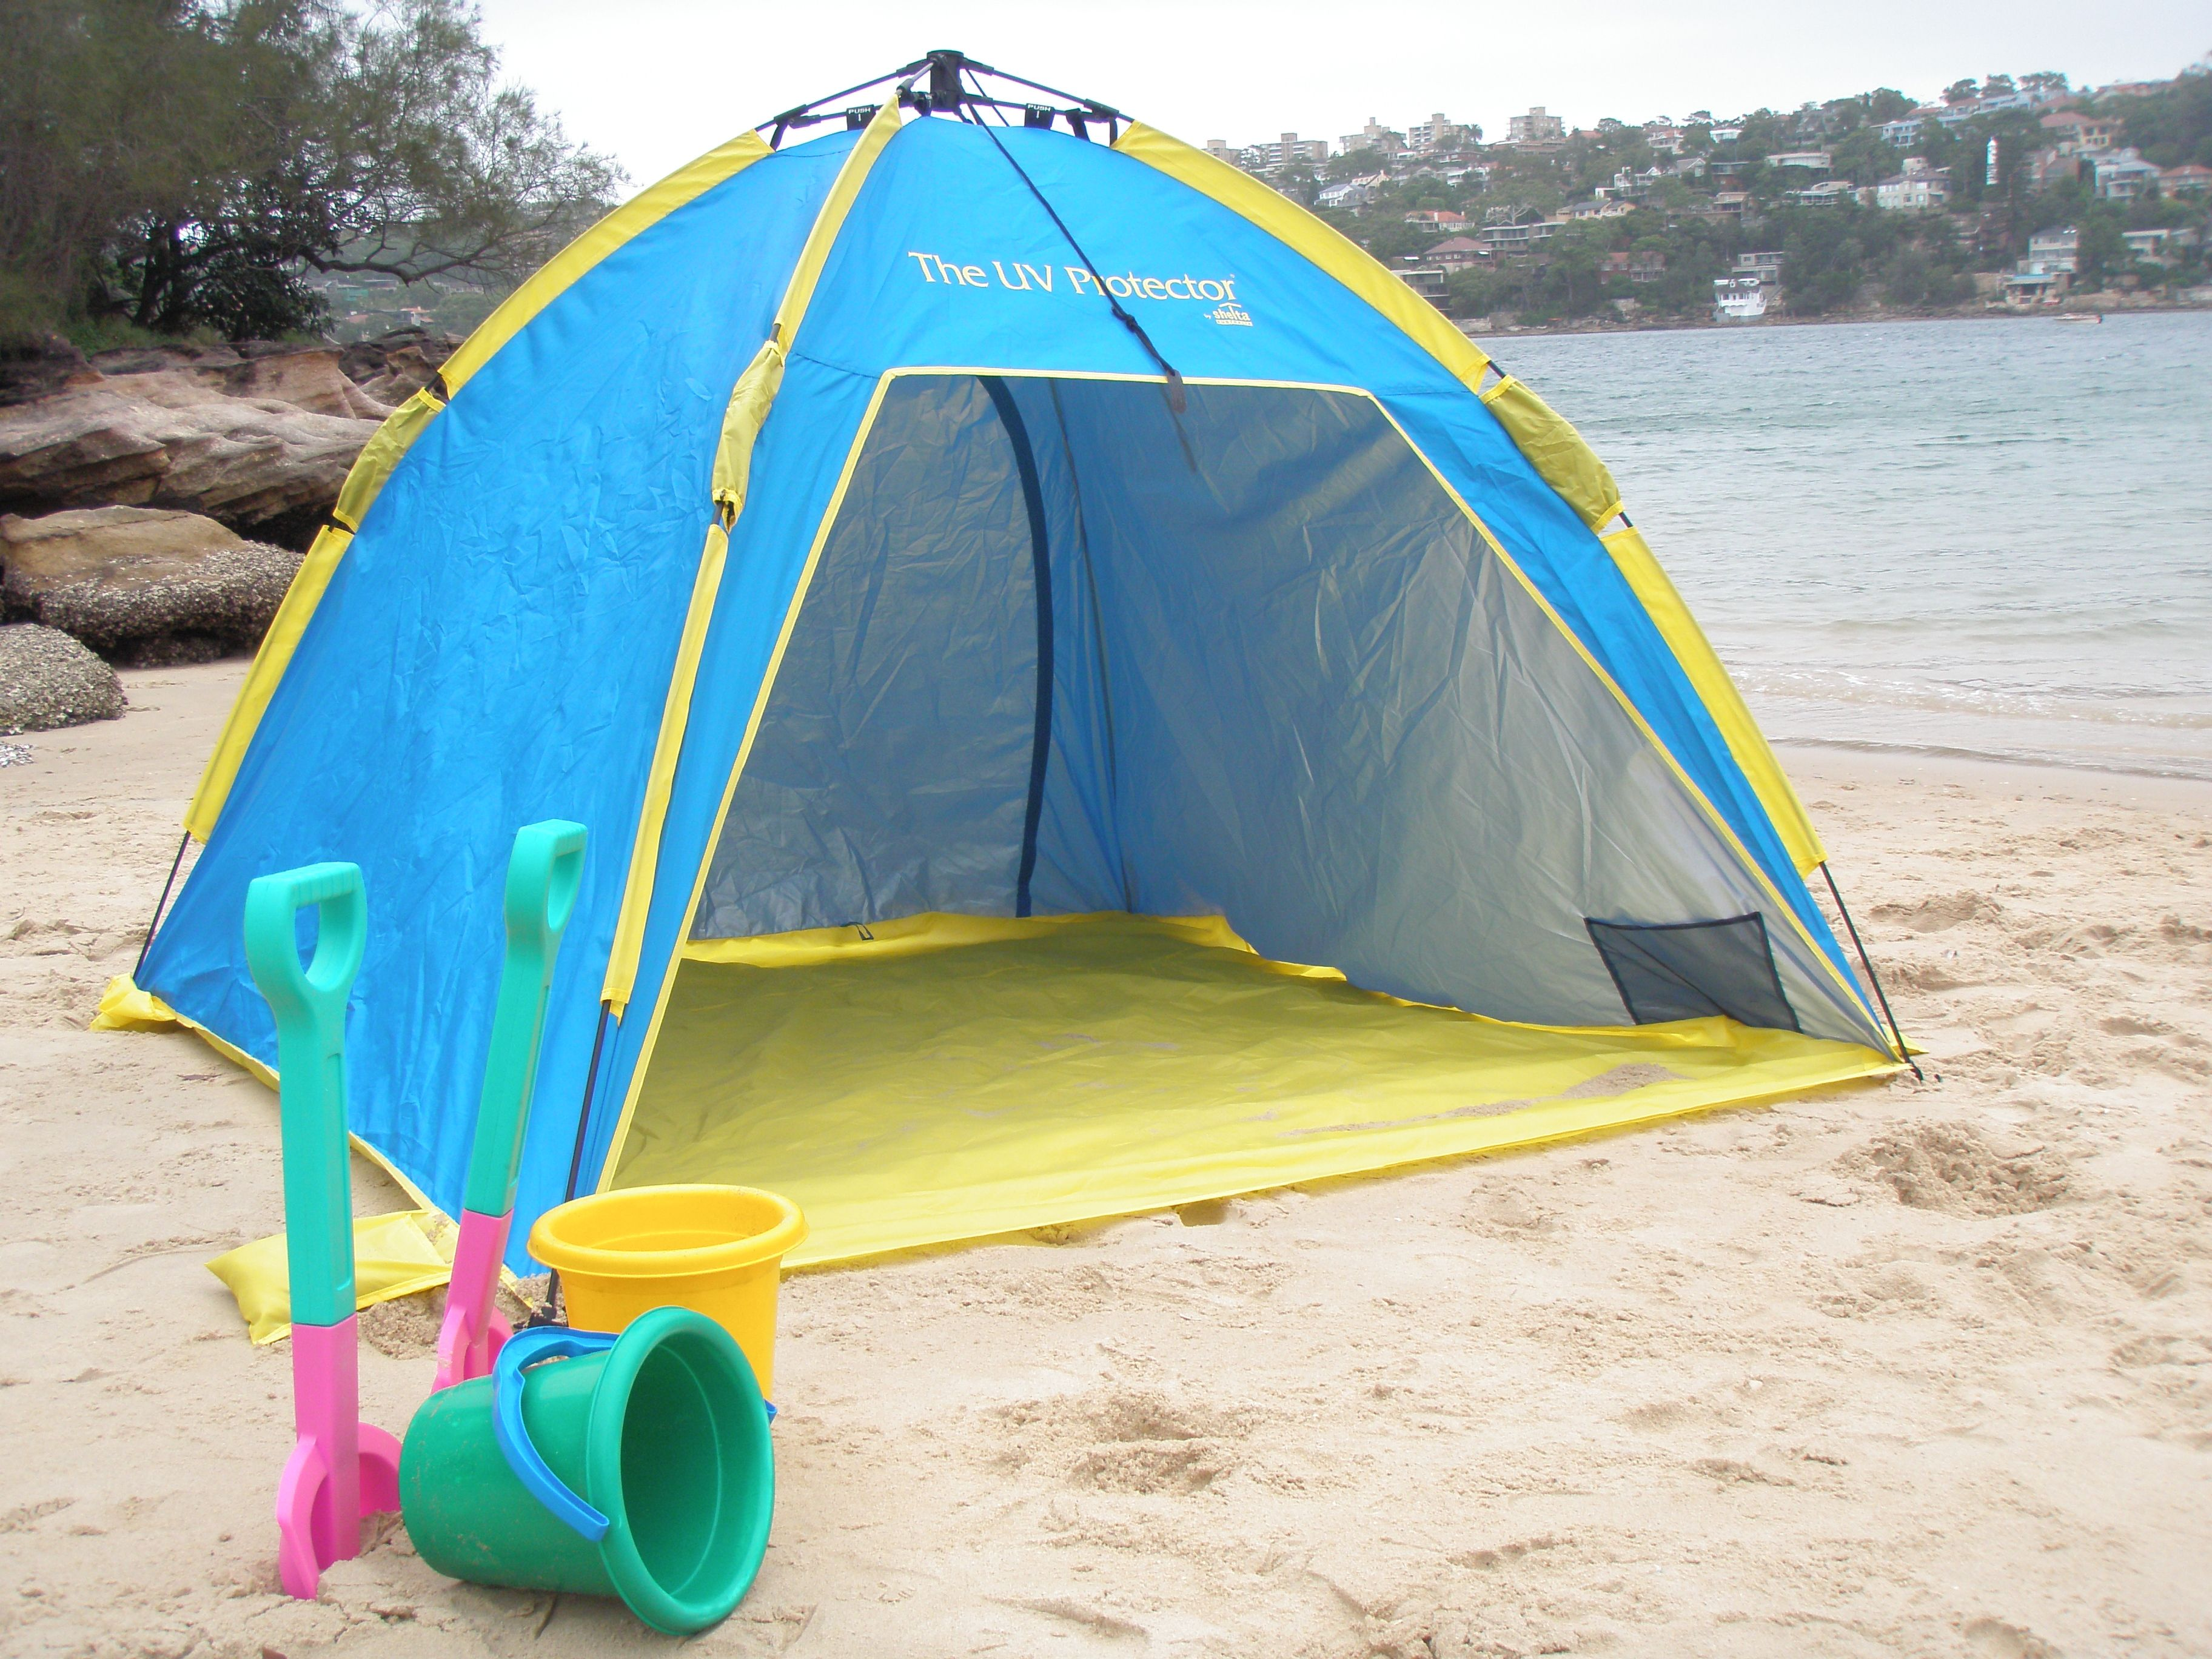 Sunproof UV beach tent by Shelta Australia. Distributed in